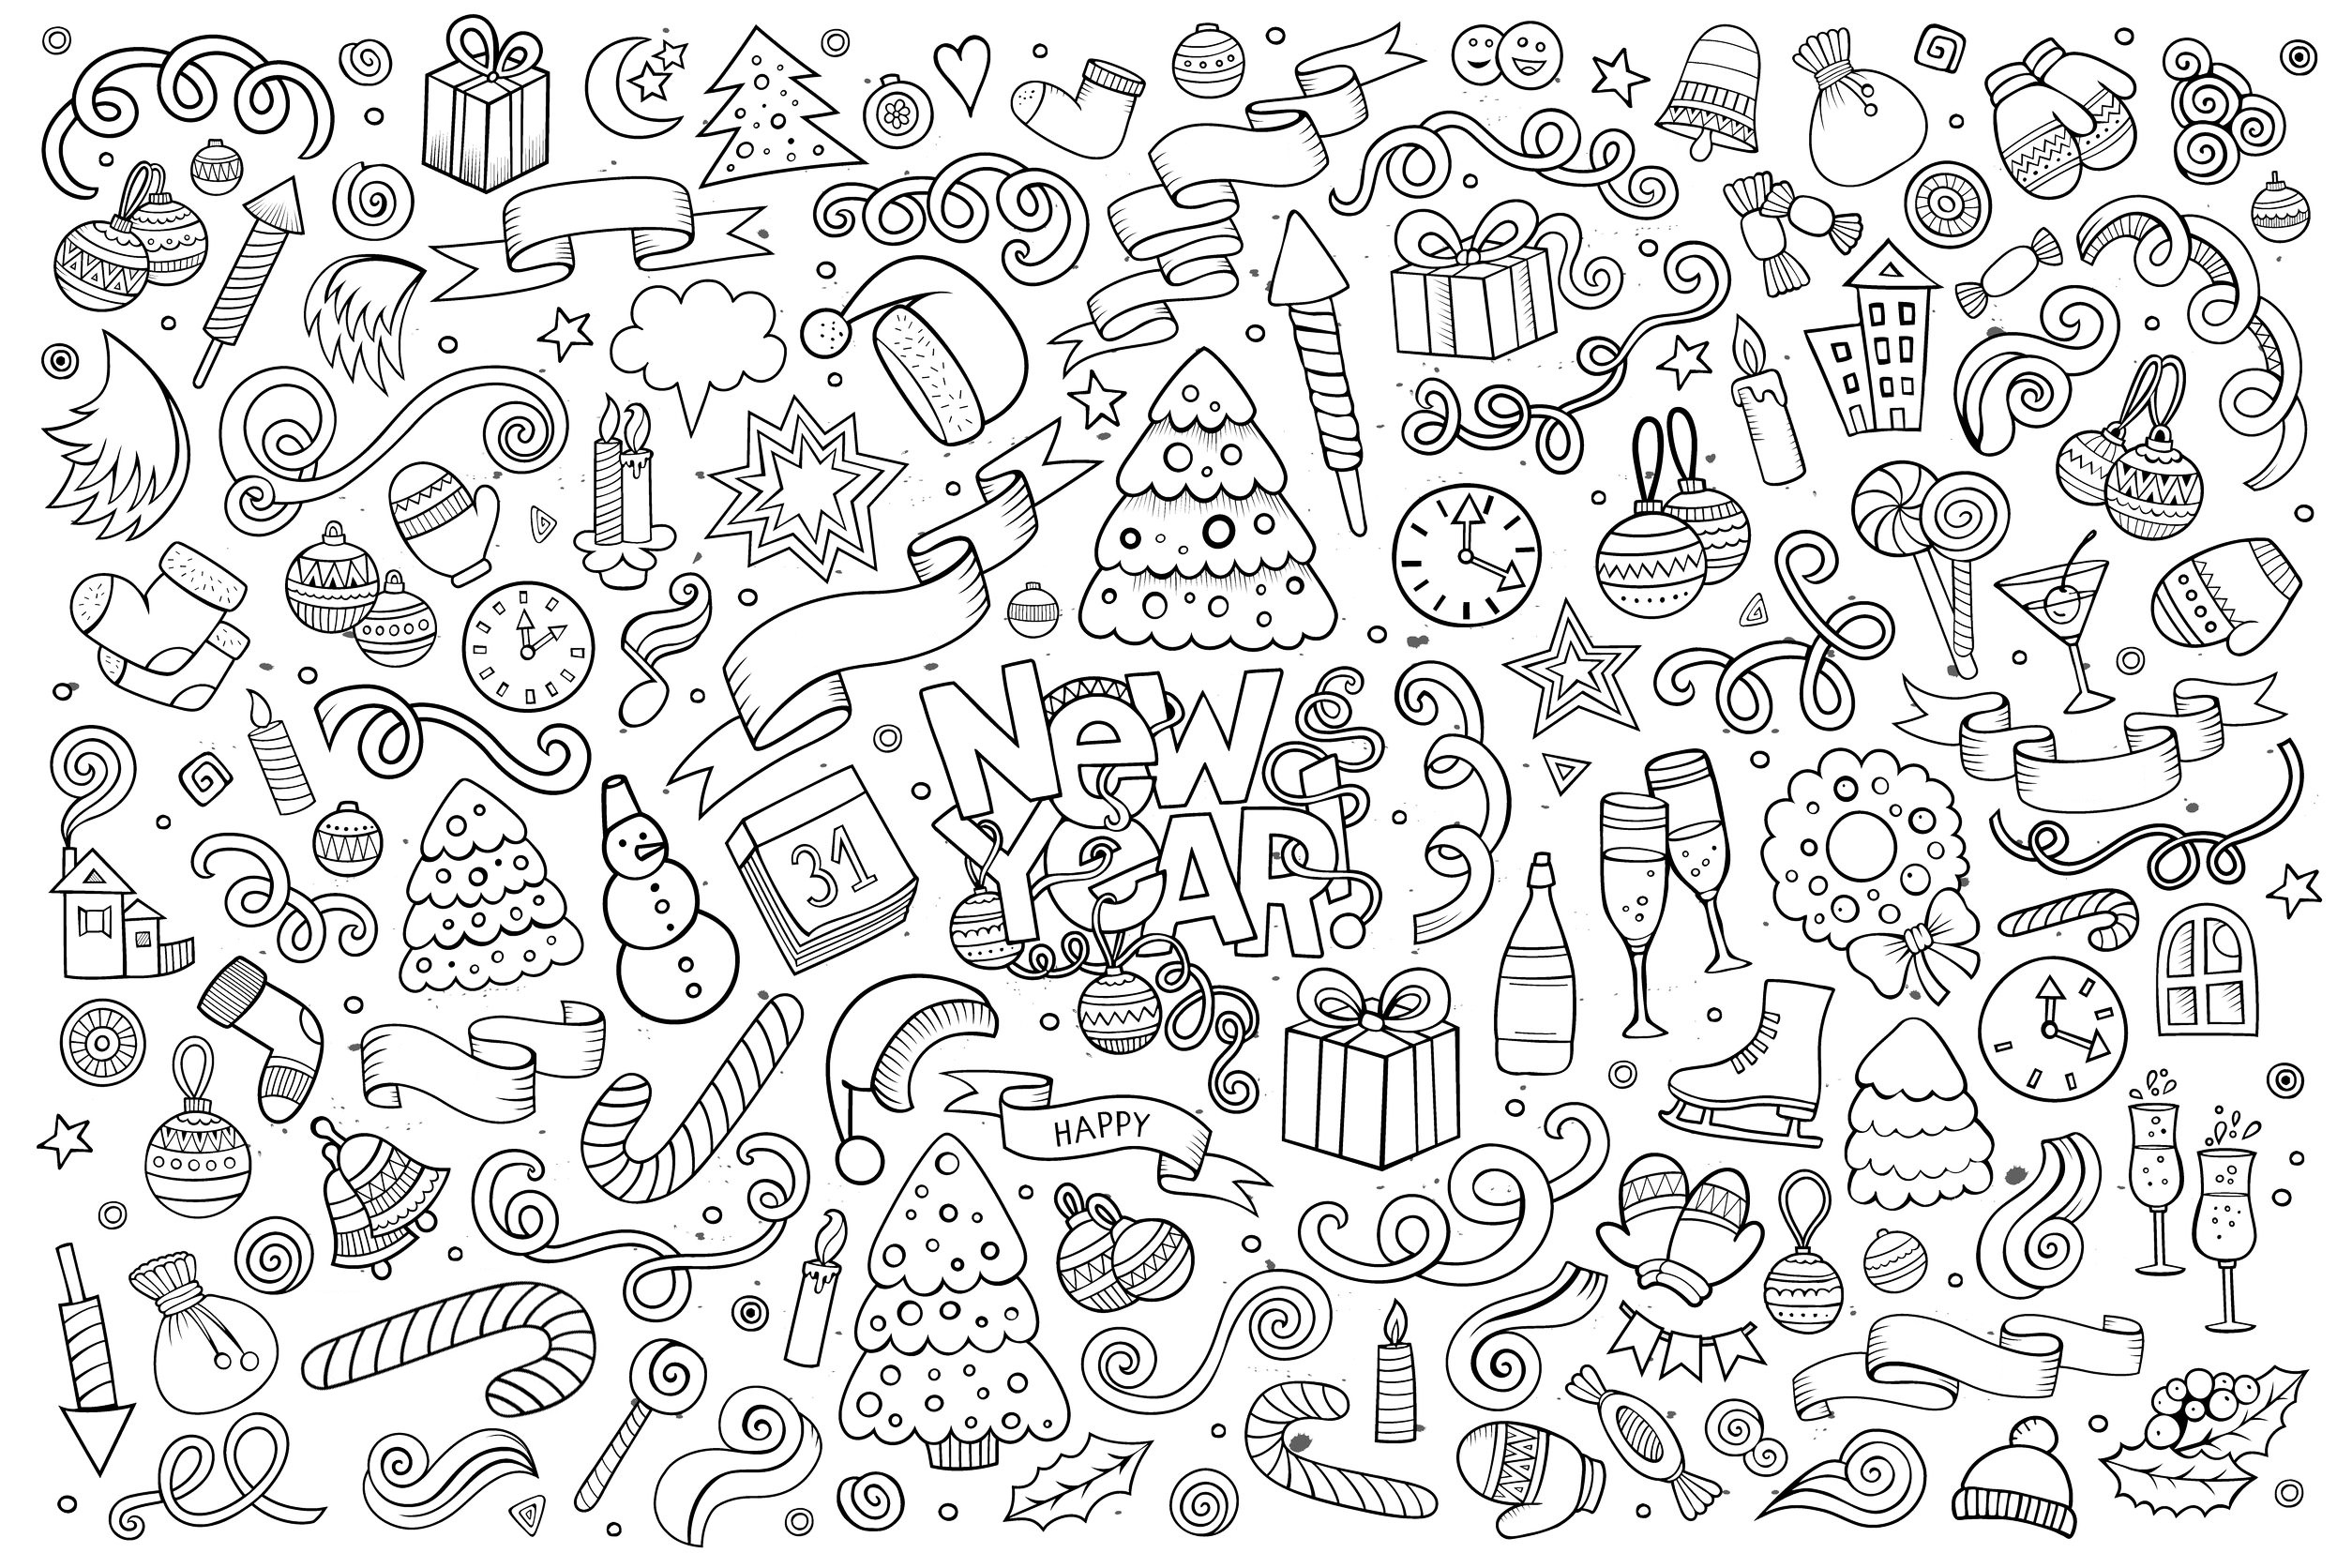 Happy new year doodling style